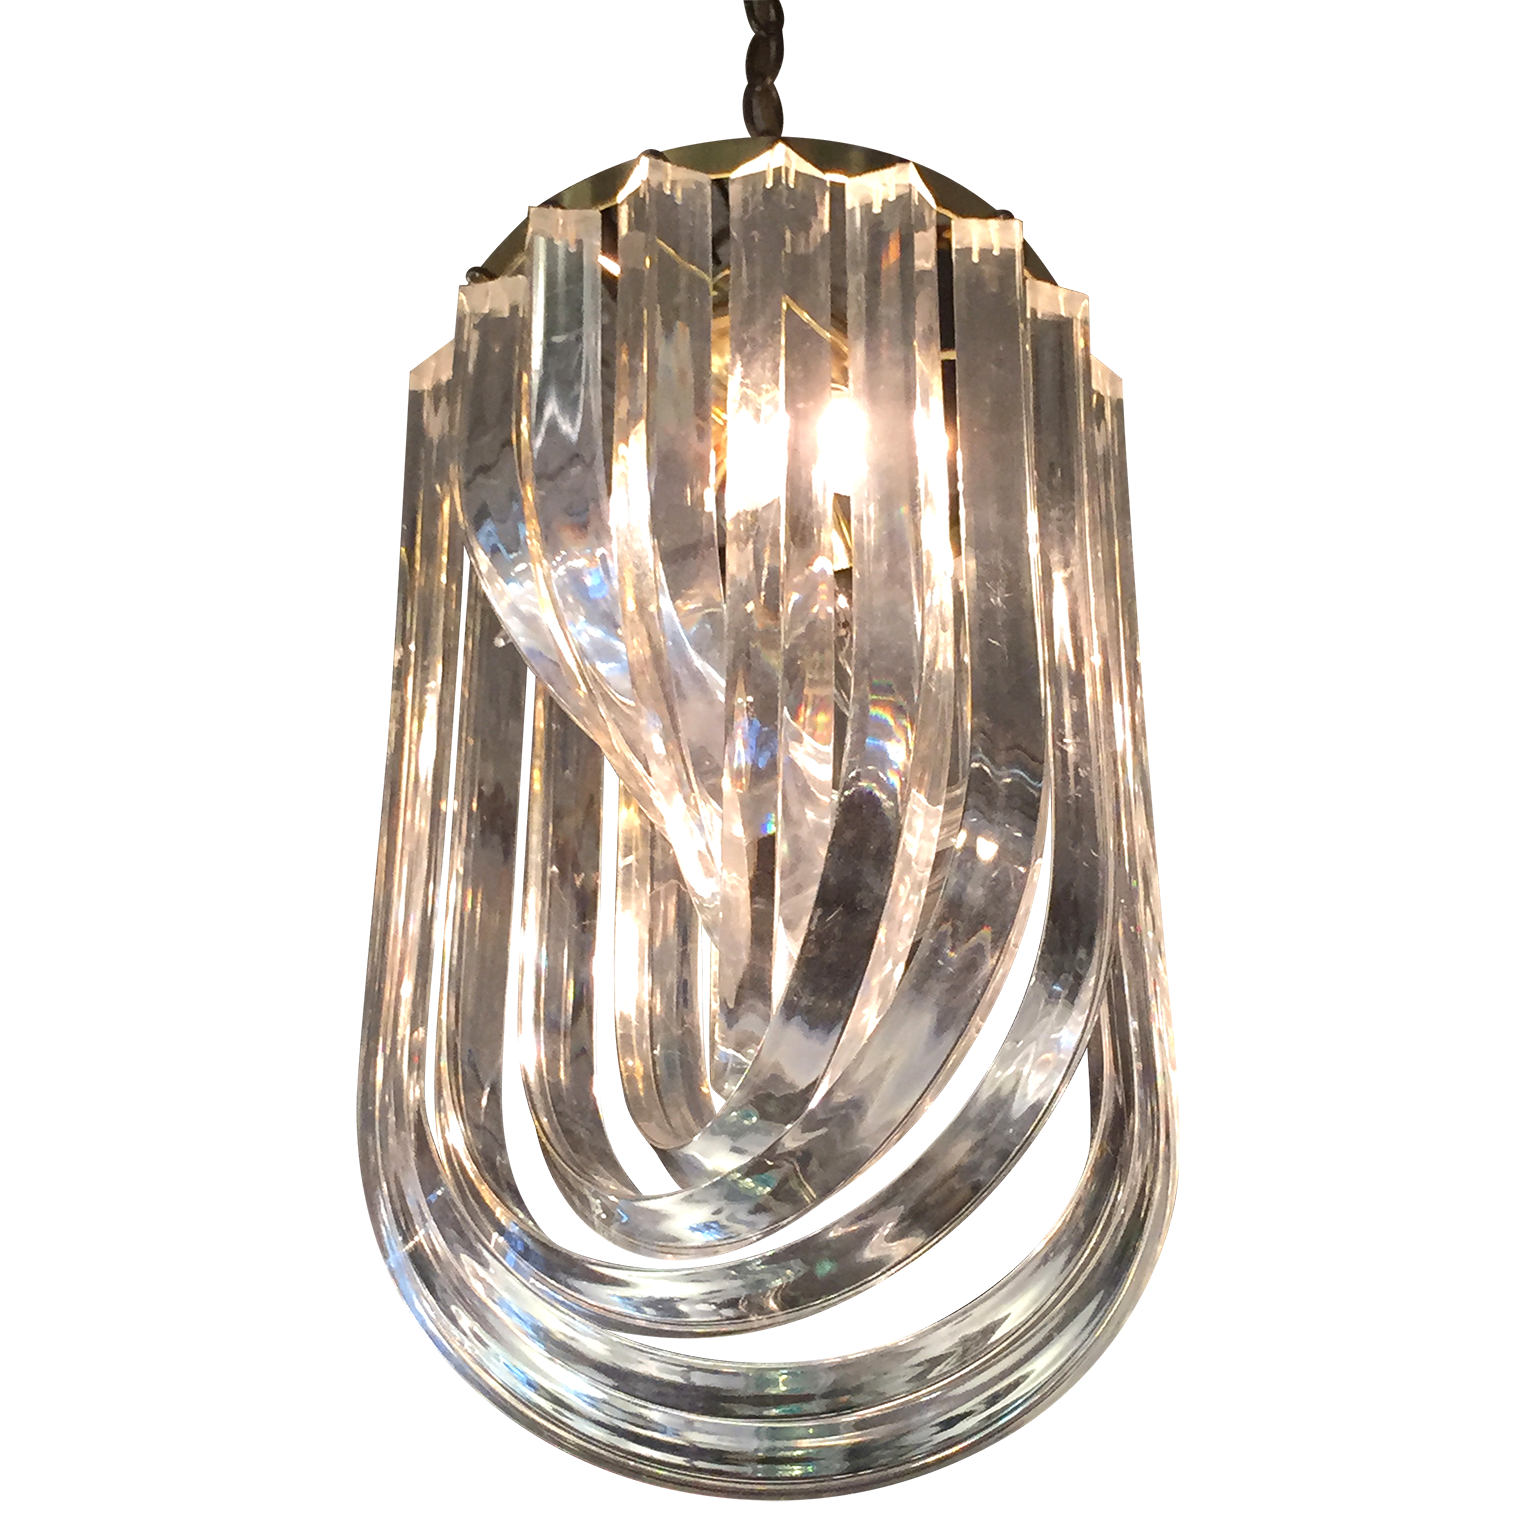 ribbon chandeliers century furniture id mid sale chandelier large lucite pendant at for lights f modern l img lighting